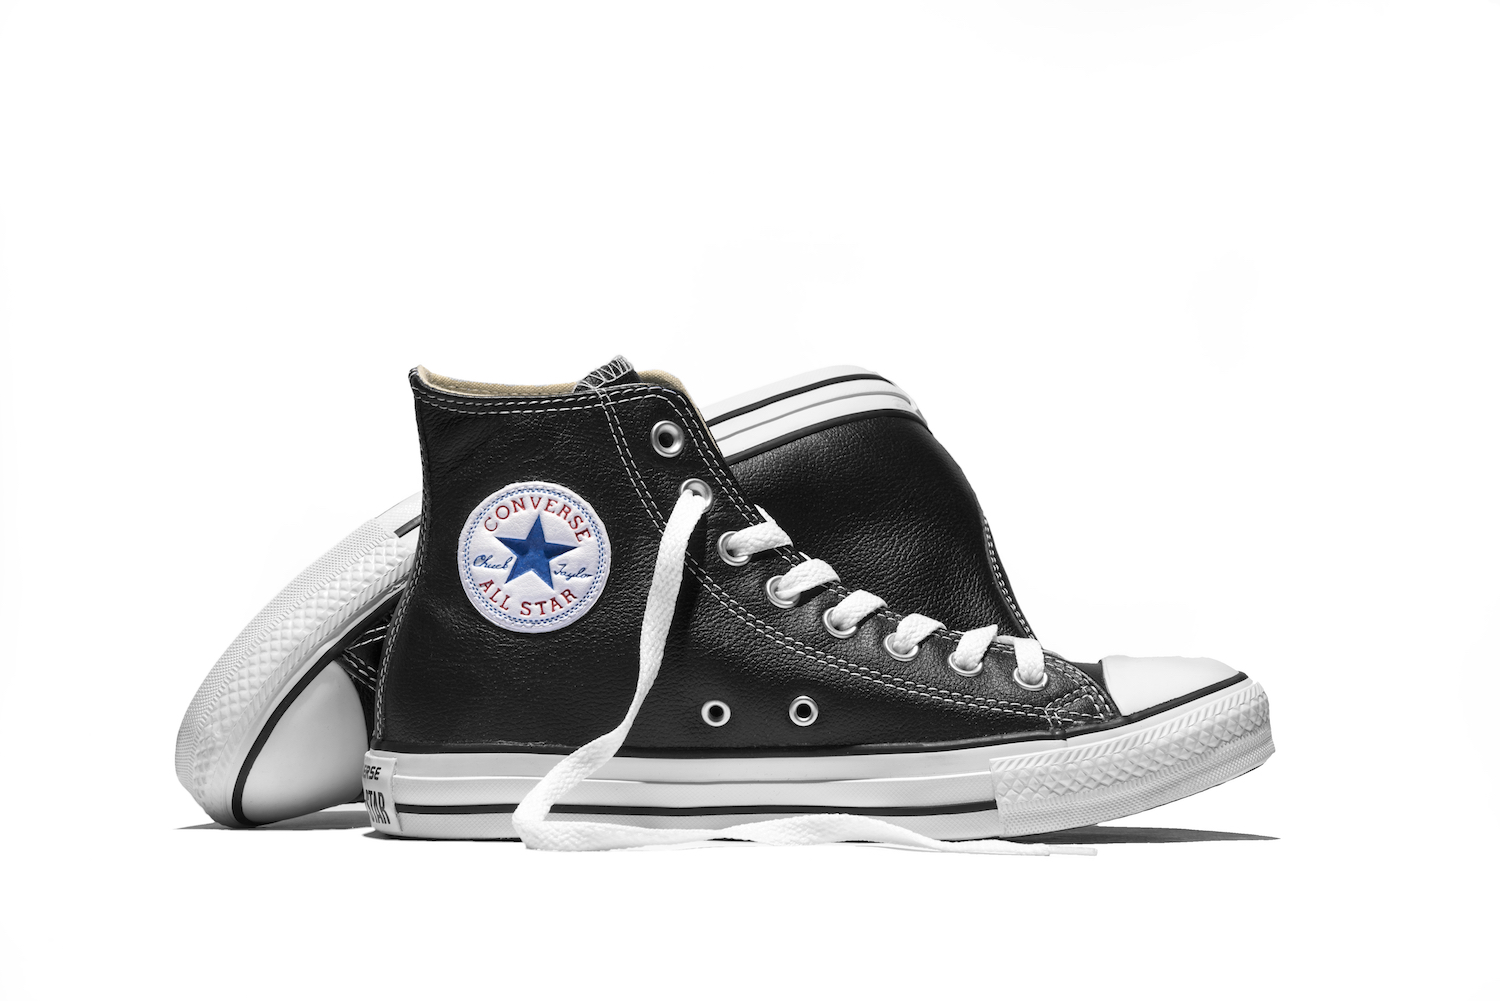 93b80e1f2ad6f7 CONVERSE CHUCK TAYLOR ALL STAR LEATHER NOW AVAILABLE AT CONVERSE ...